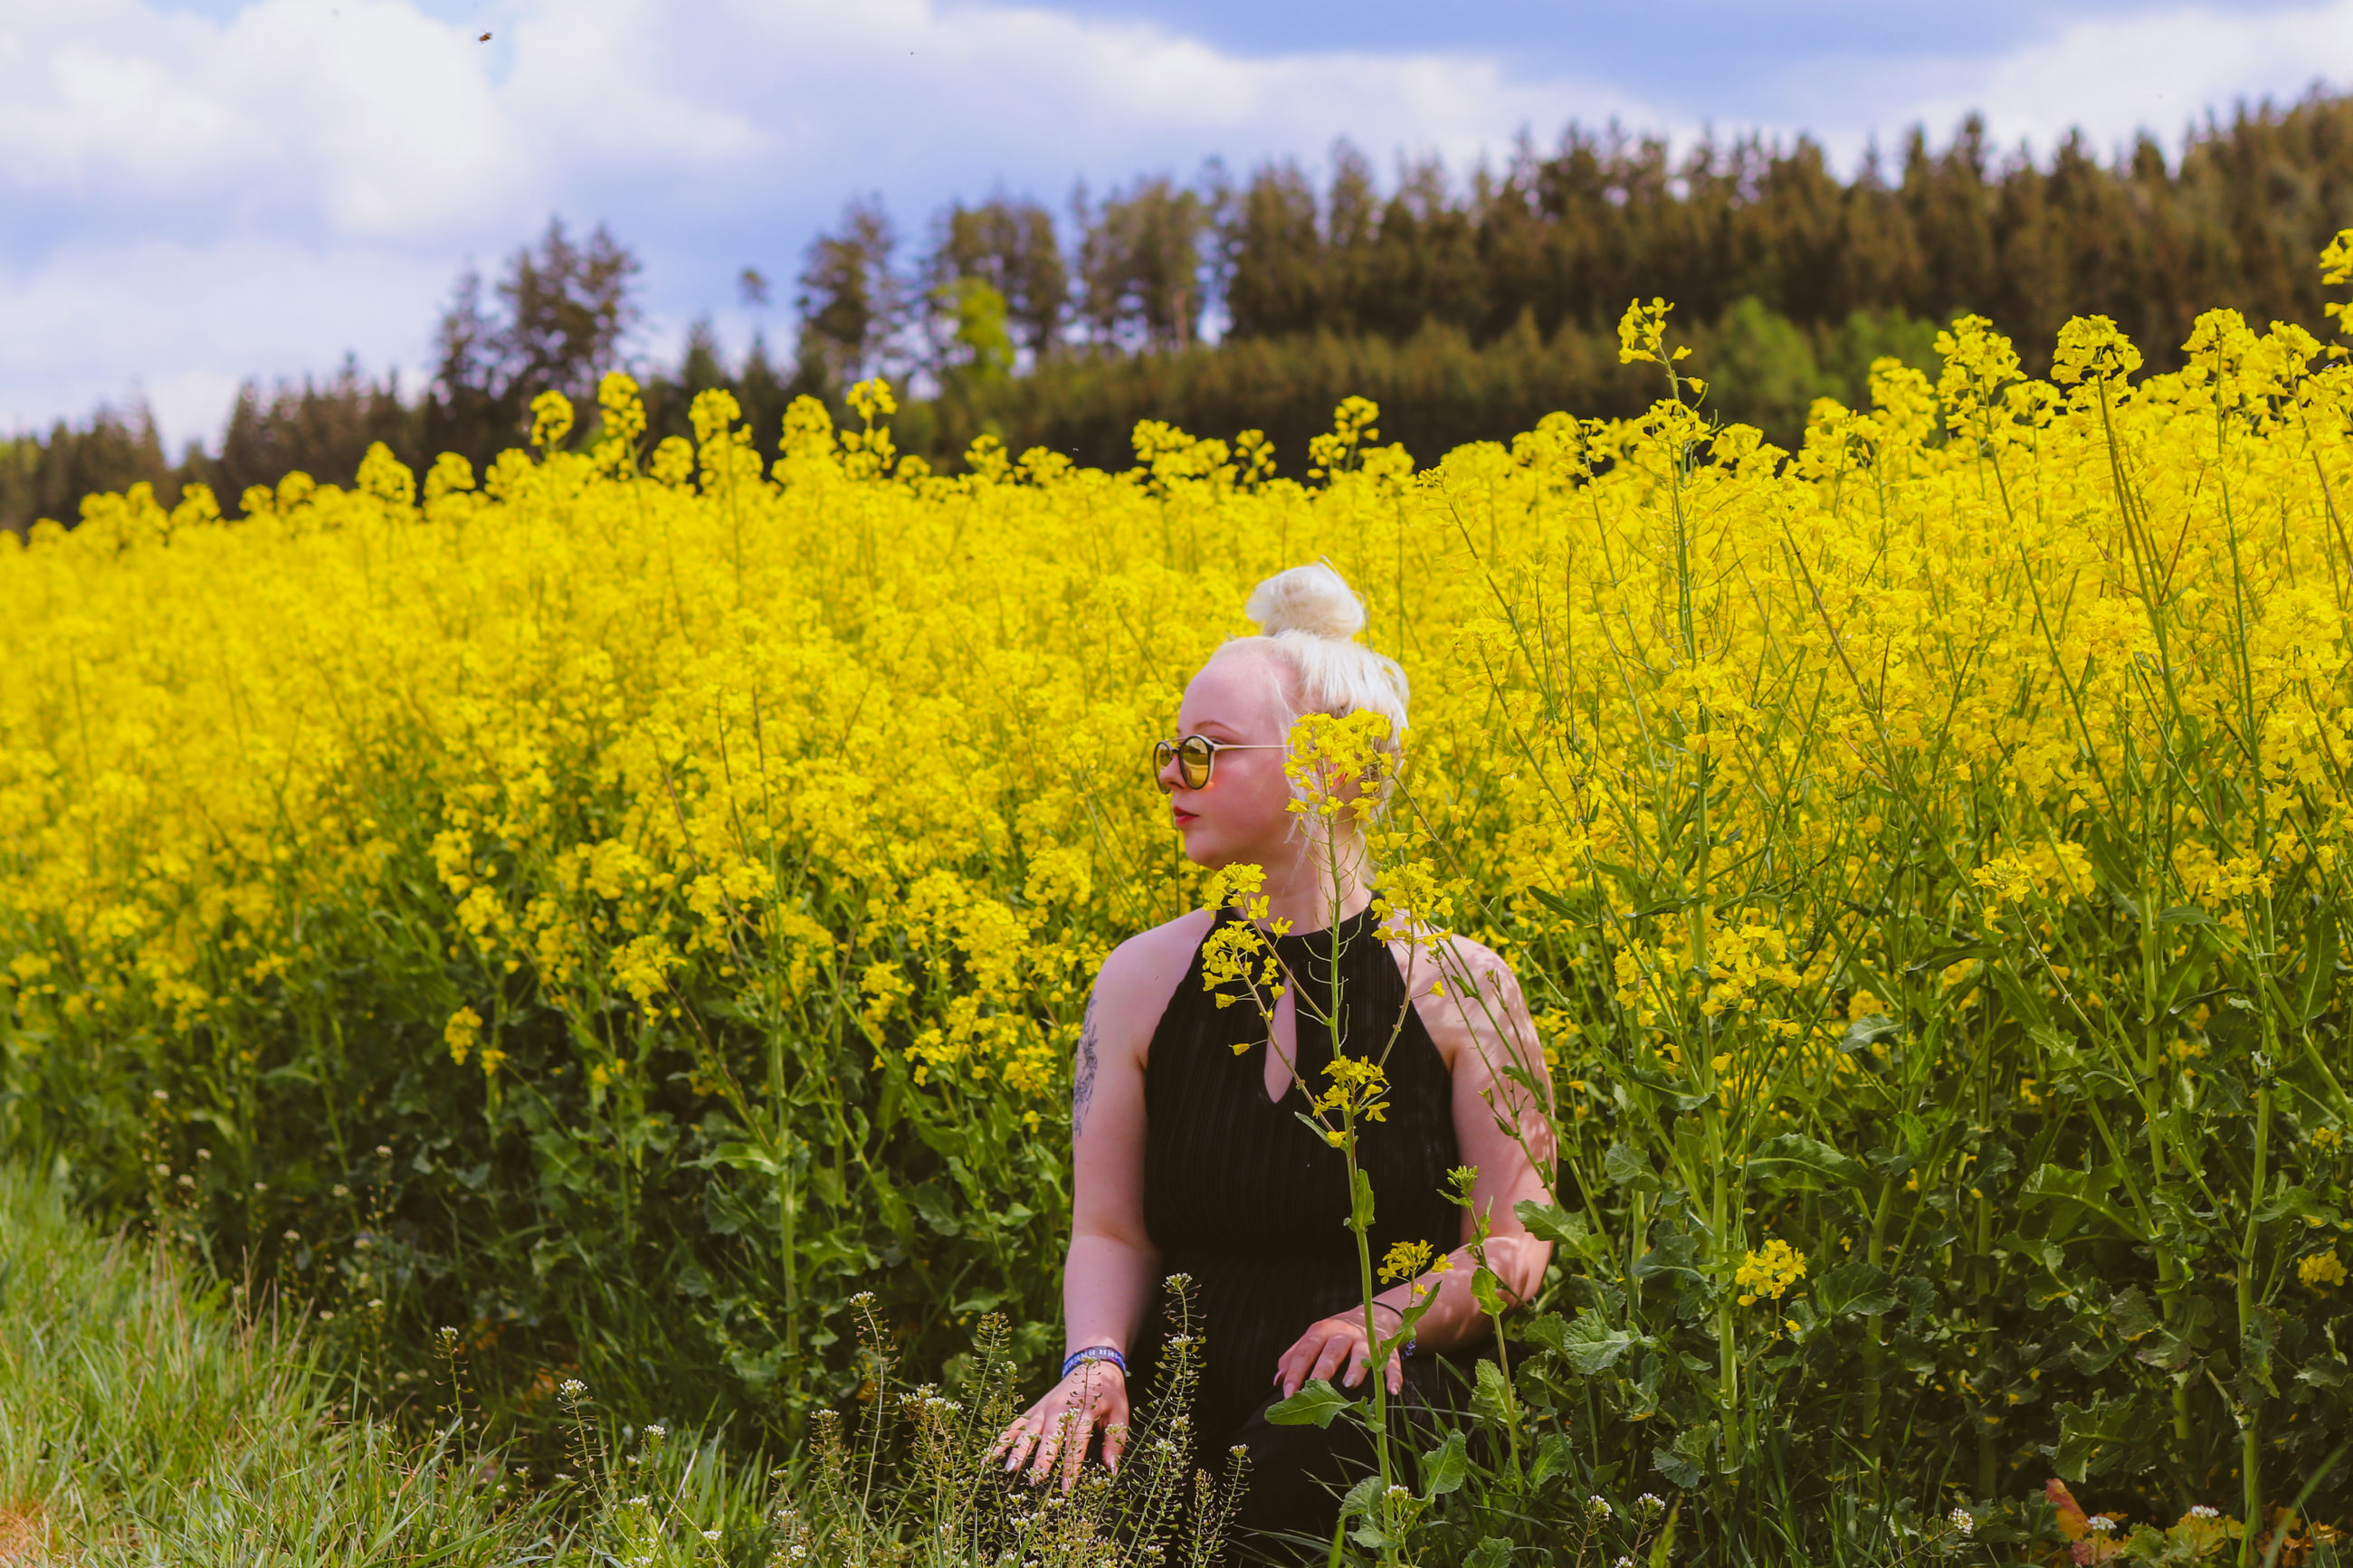 yellow, real people, plant, childhood, flowering plant, flower, child, land, field, girls, nature, lifestyles, growth, women, beauty in nature, females, leisure activity, one person, day, outdoors, innocence